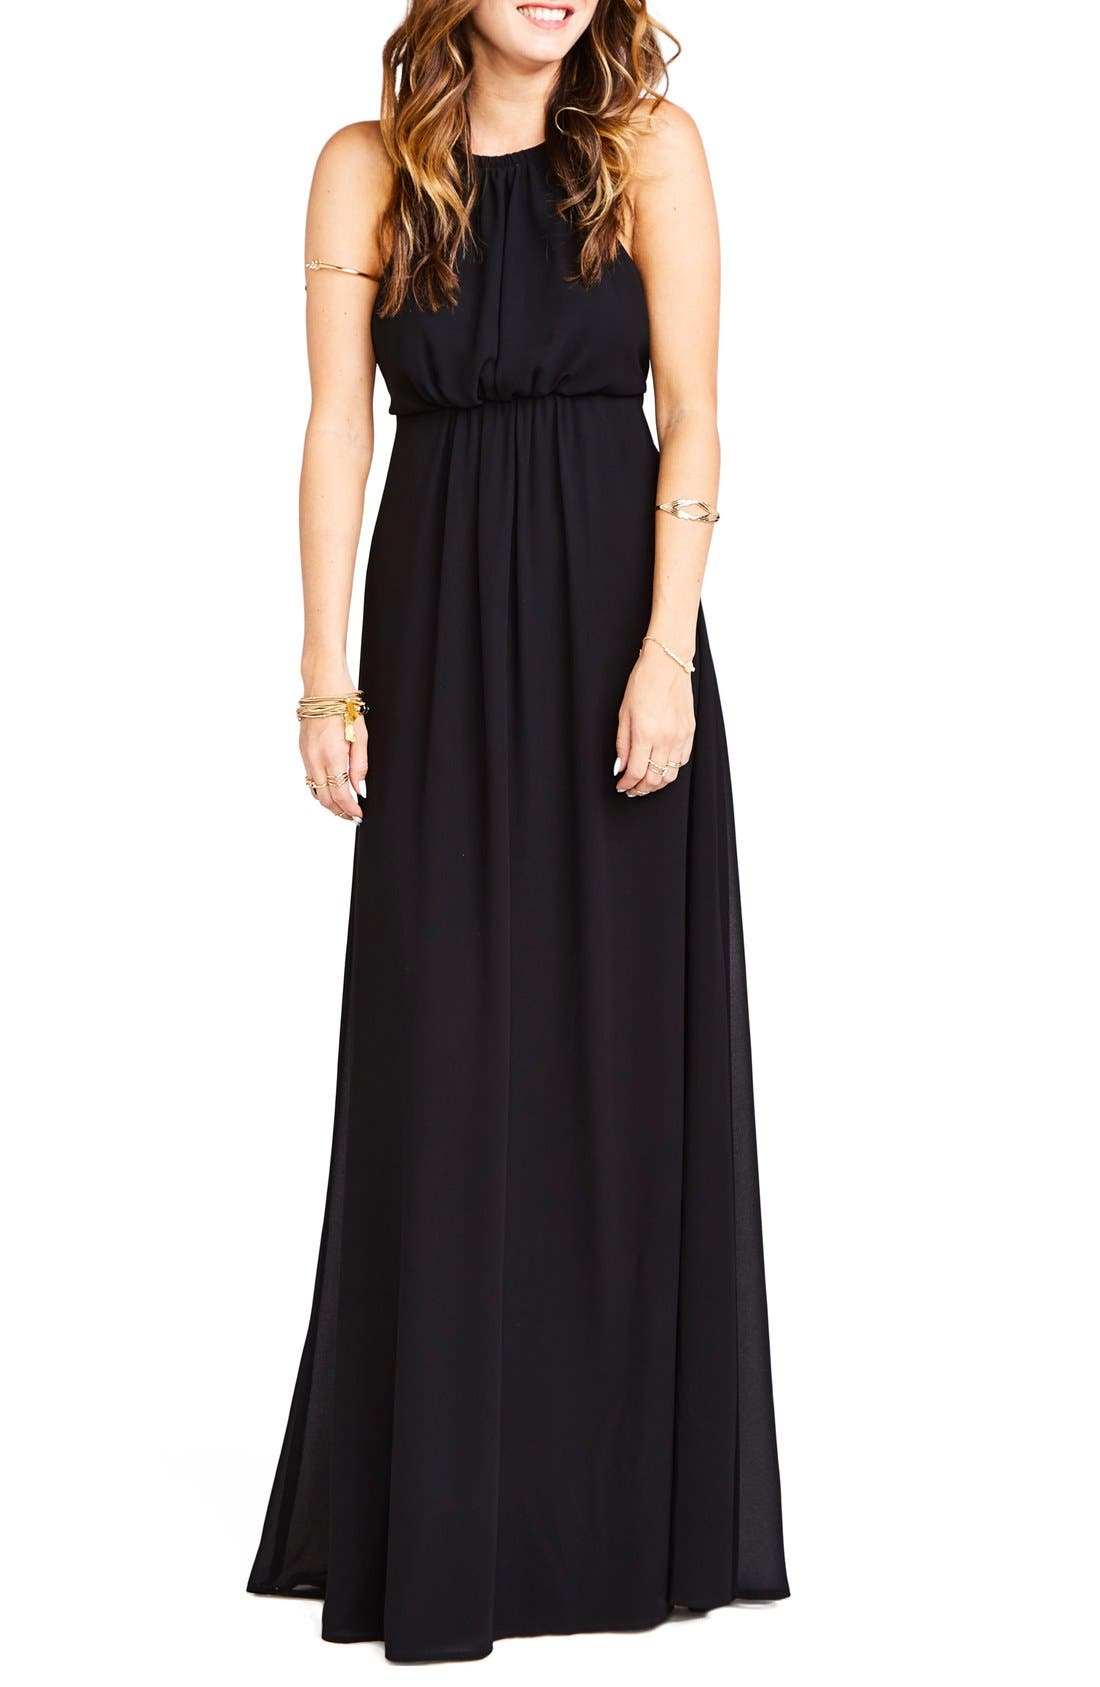 Amanda Open Back Blouson Gown,                             Main thumbnail 1, color,